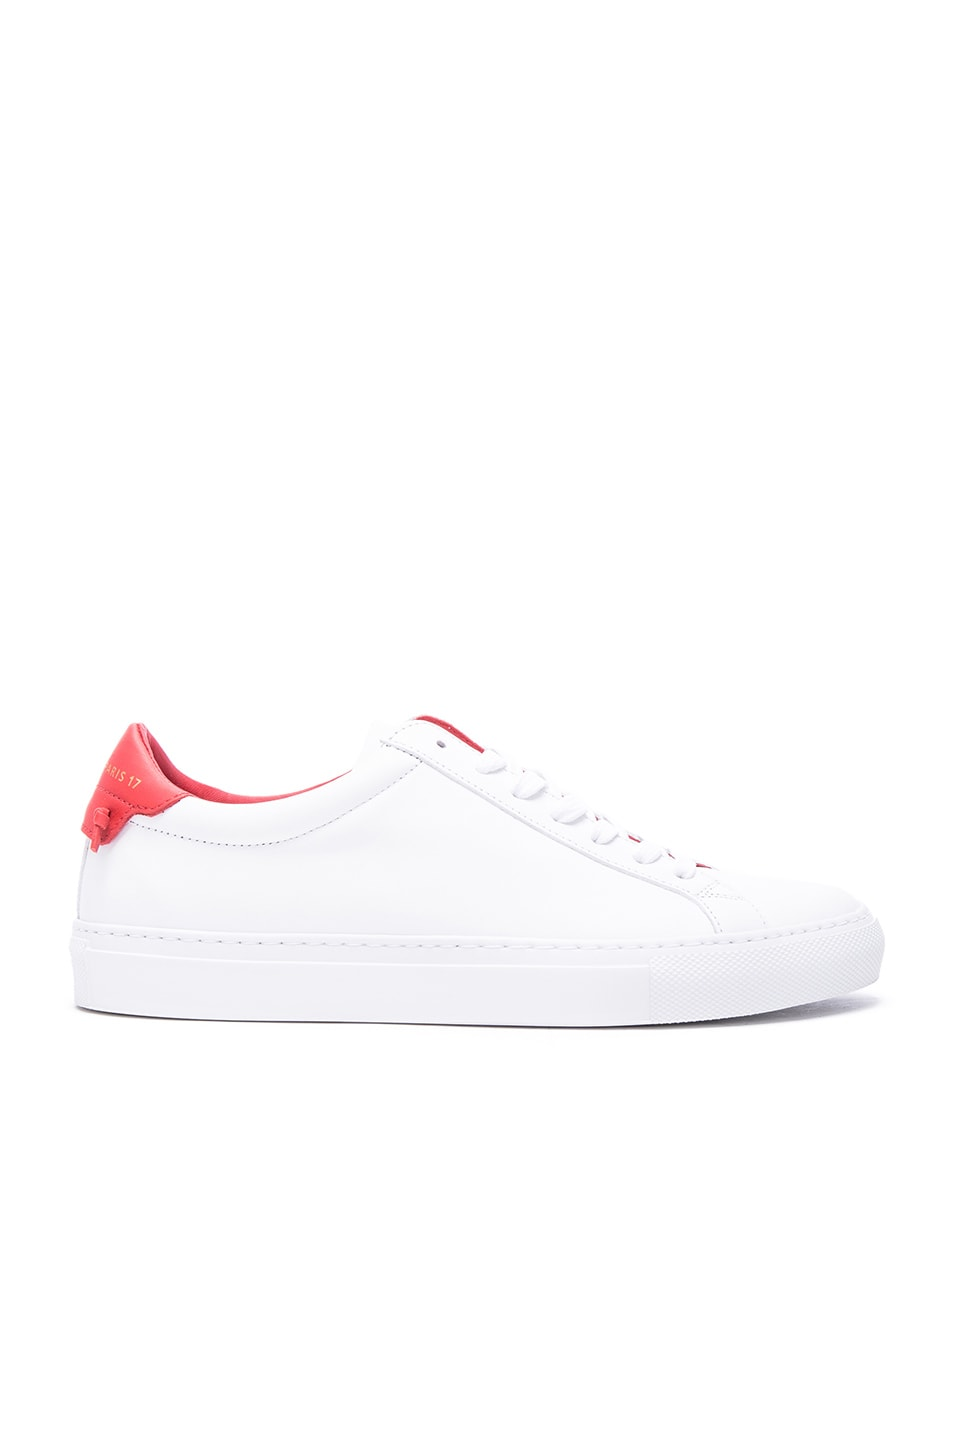 84e4e128413 Image 1 of Givenchy Knots Leather Low Sneakers in White   Red